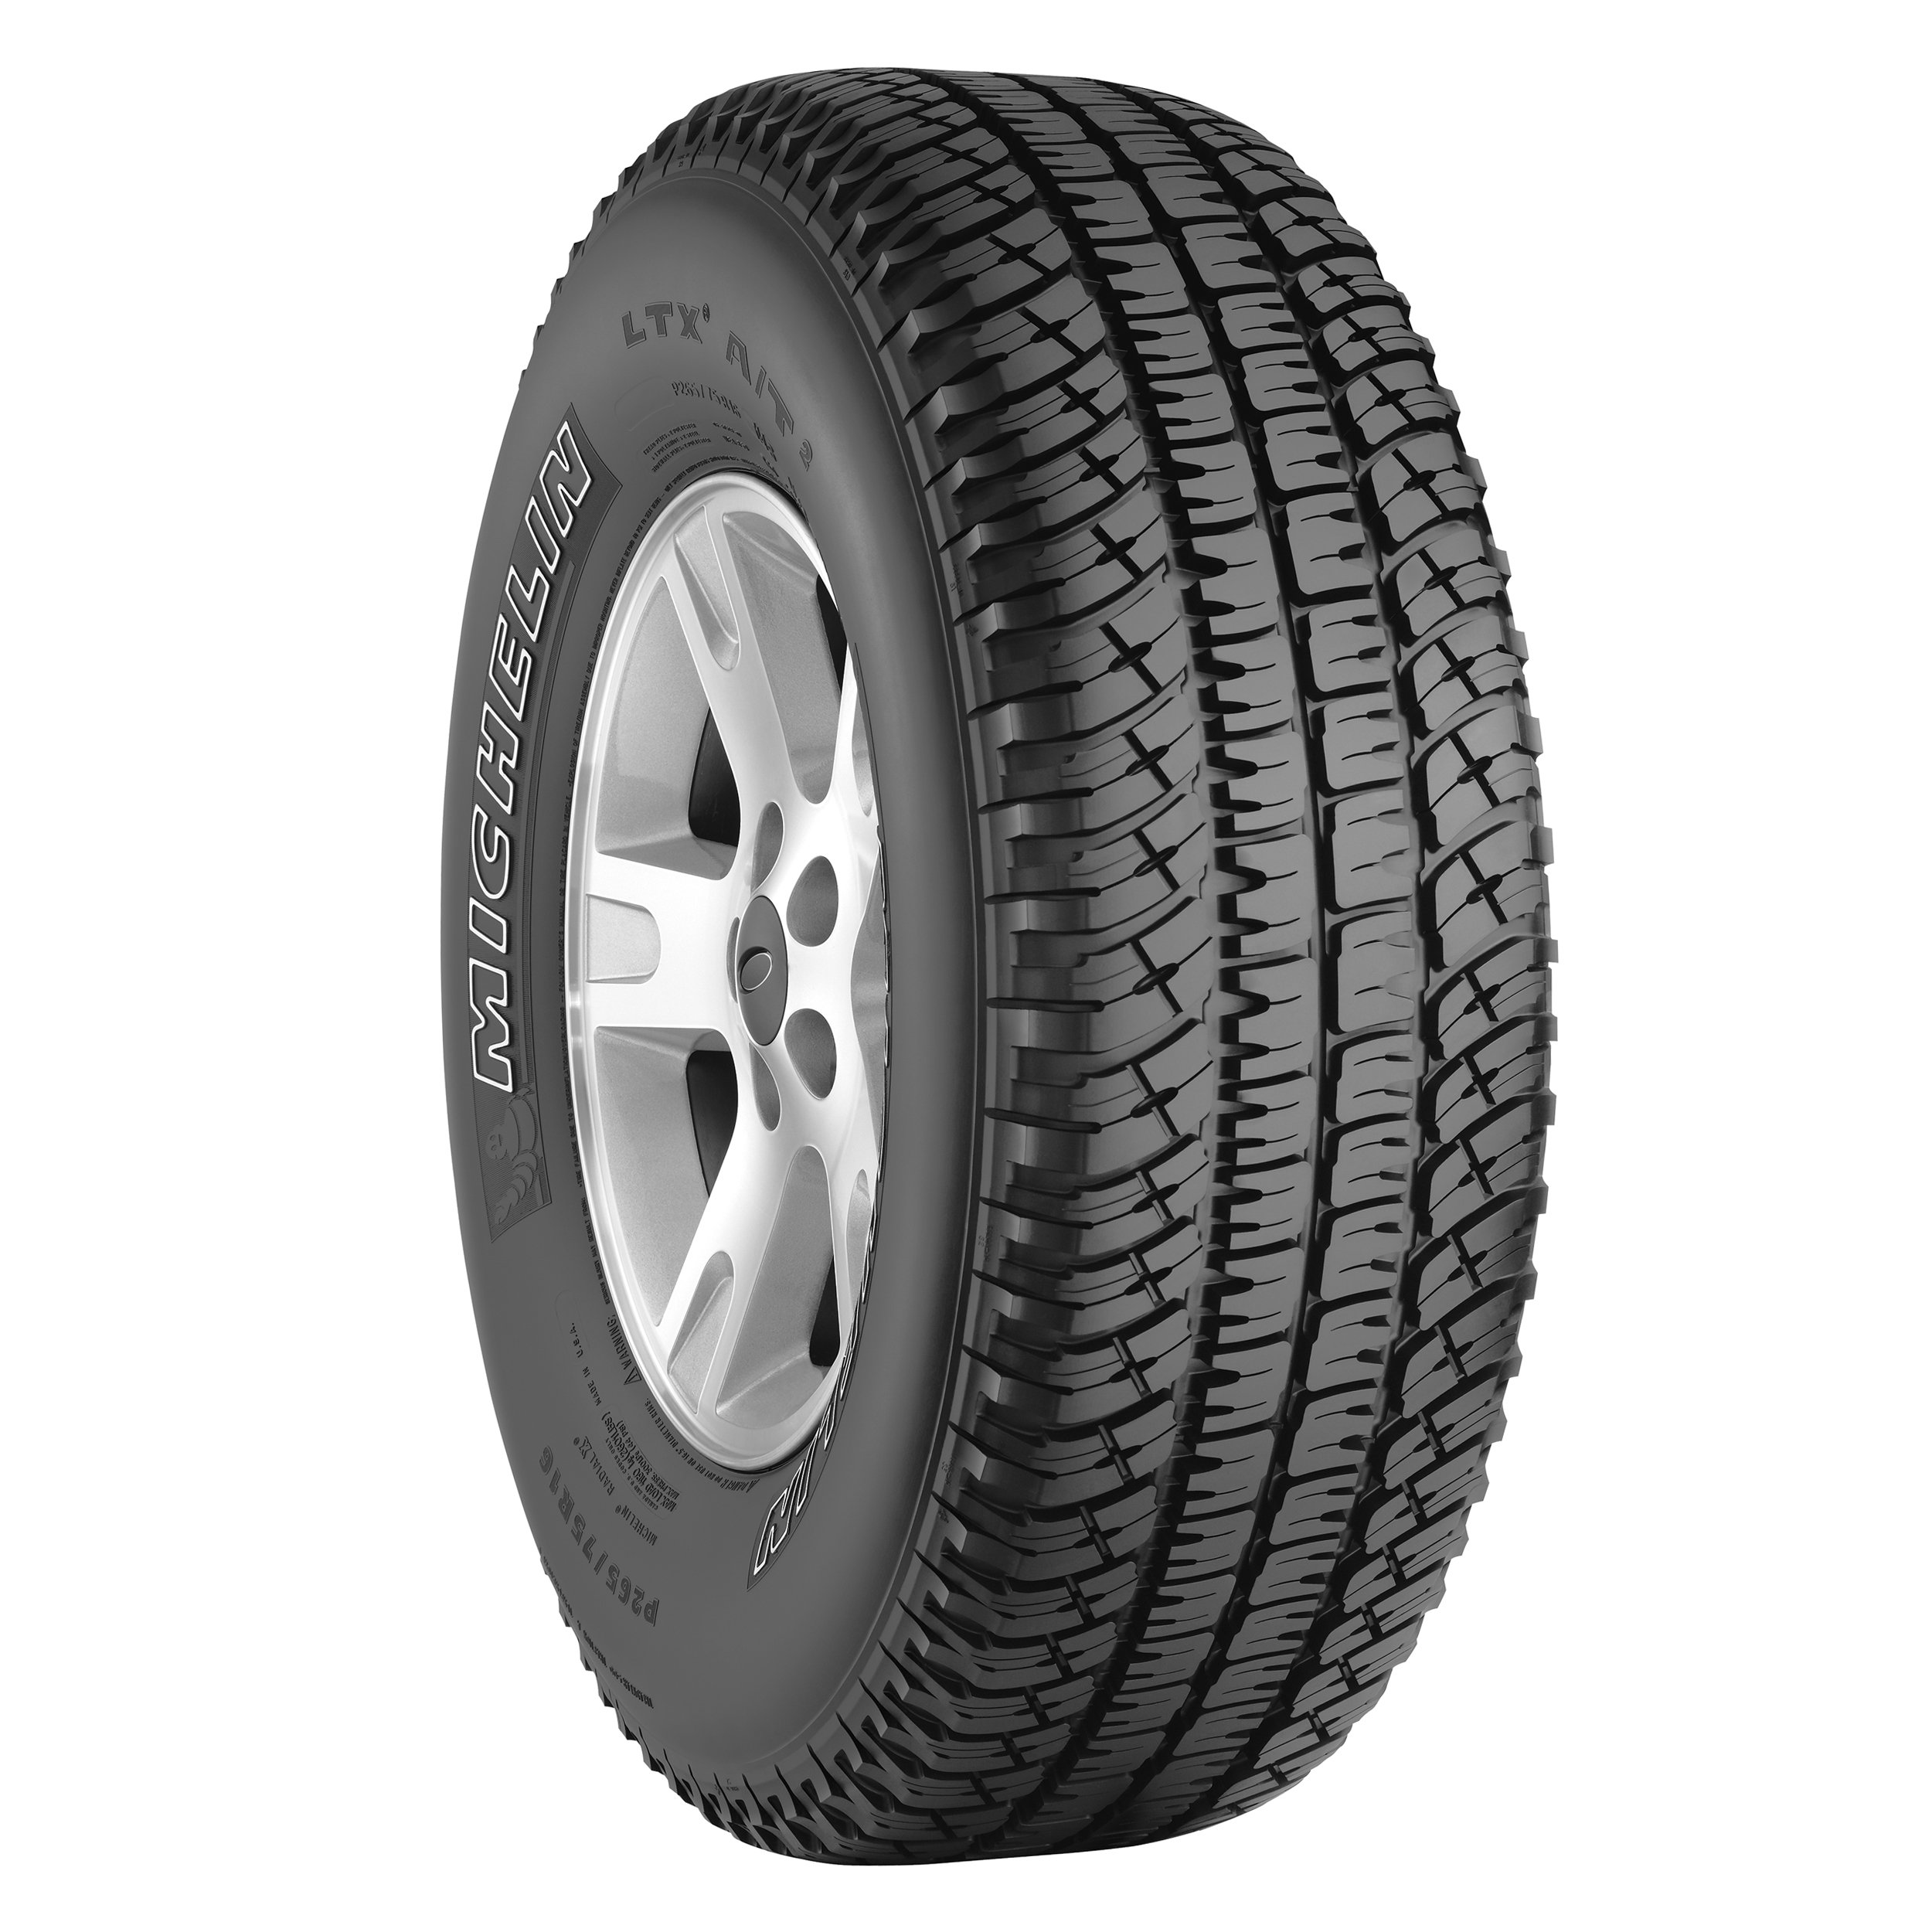 Michelin LTX A/T2 All-Season Radial Tire - LT275/70R18/E 125R